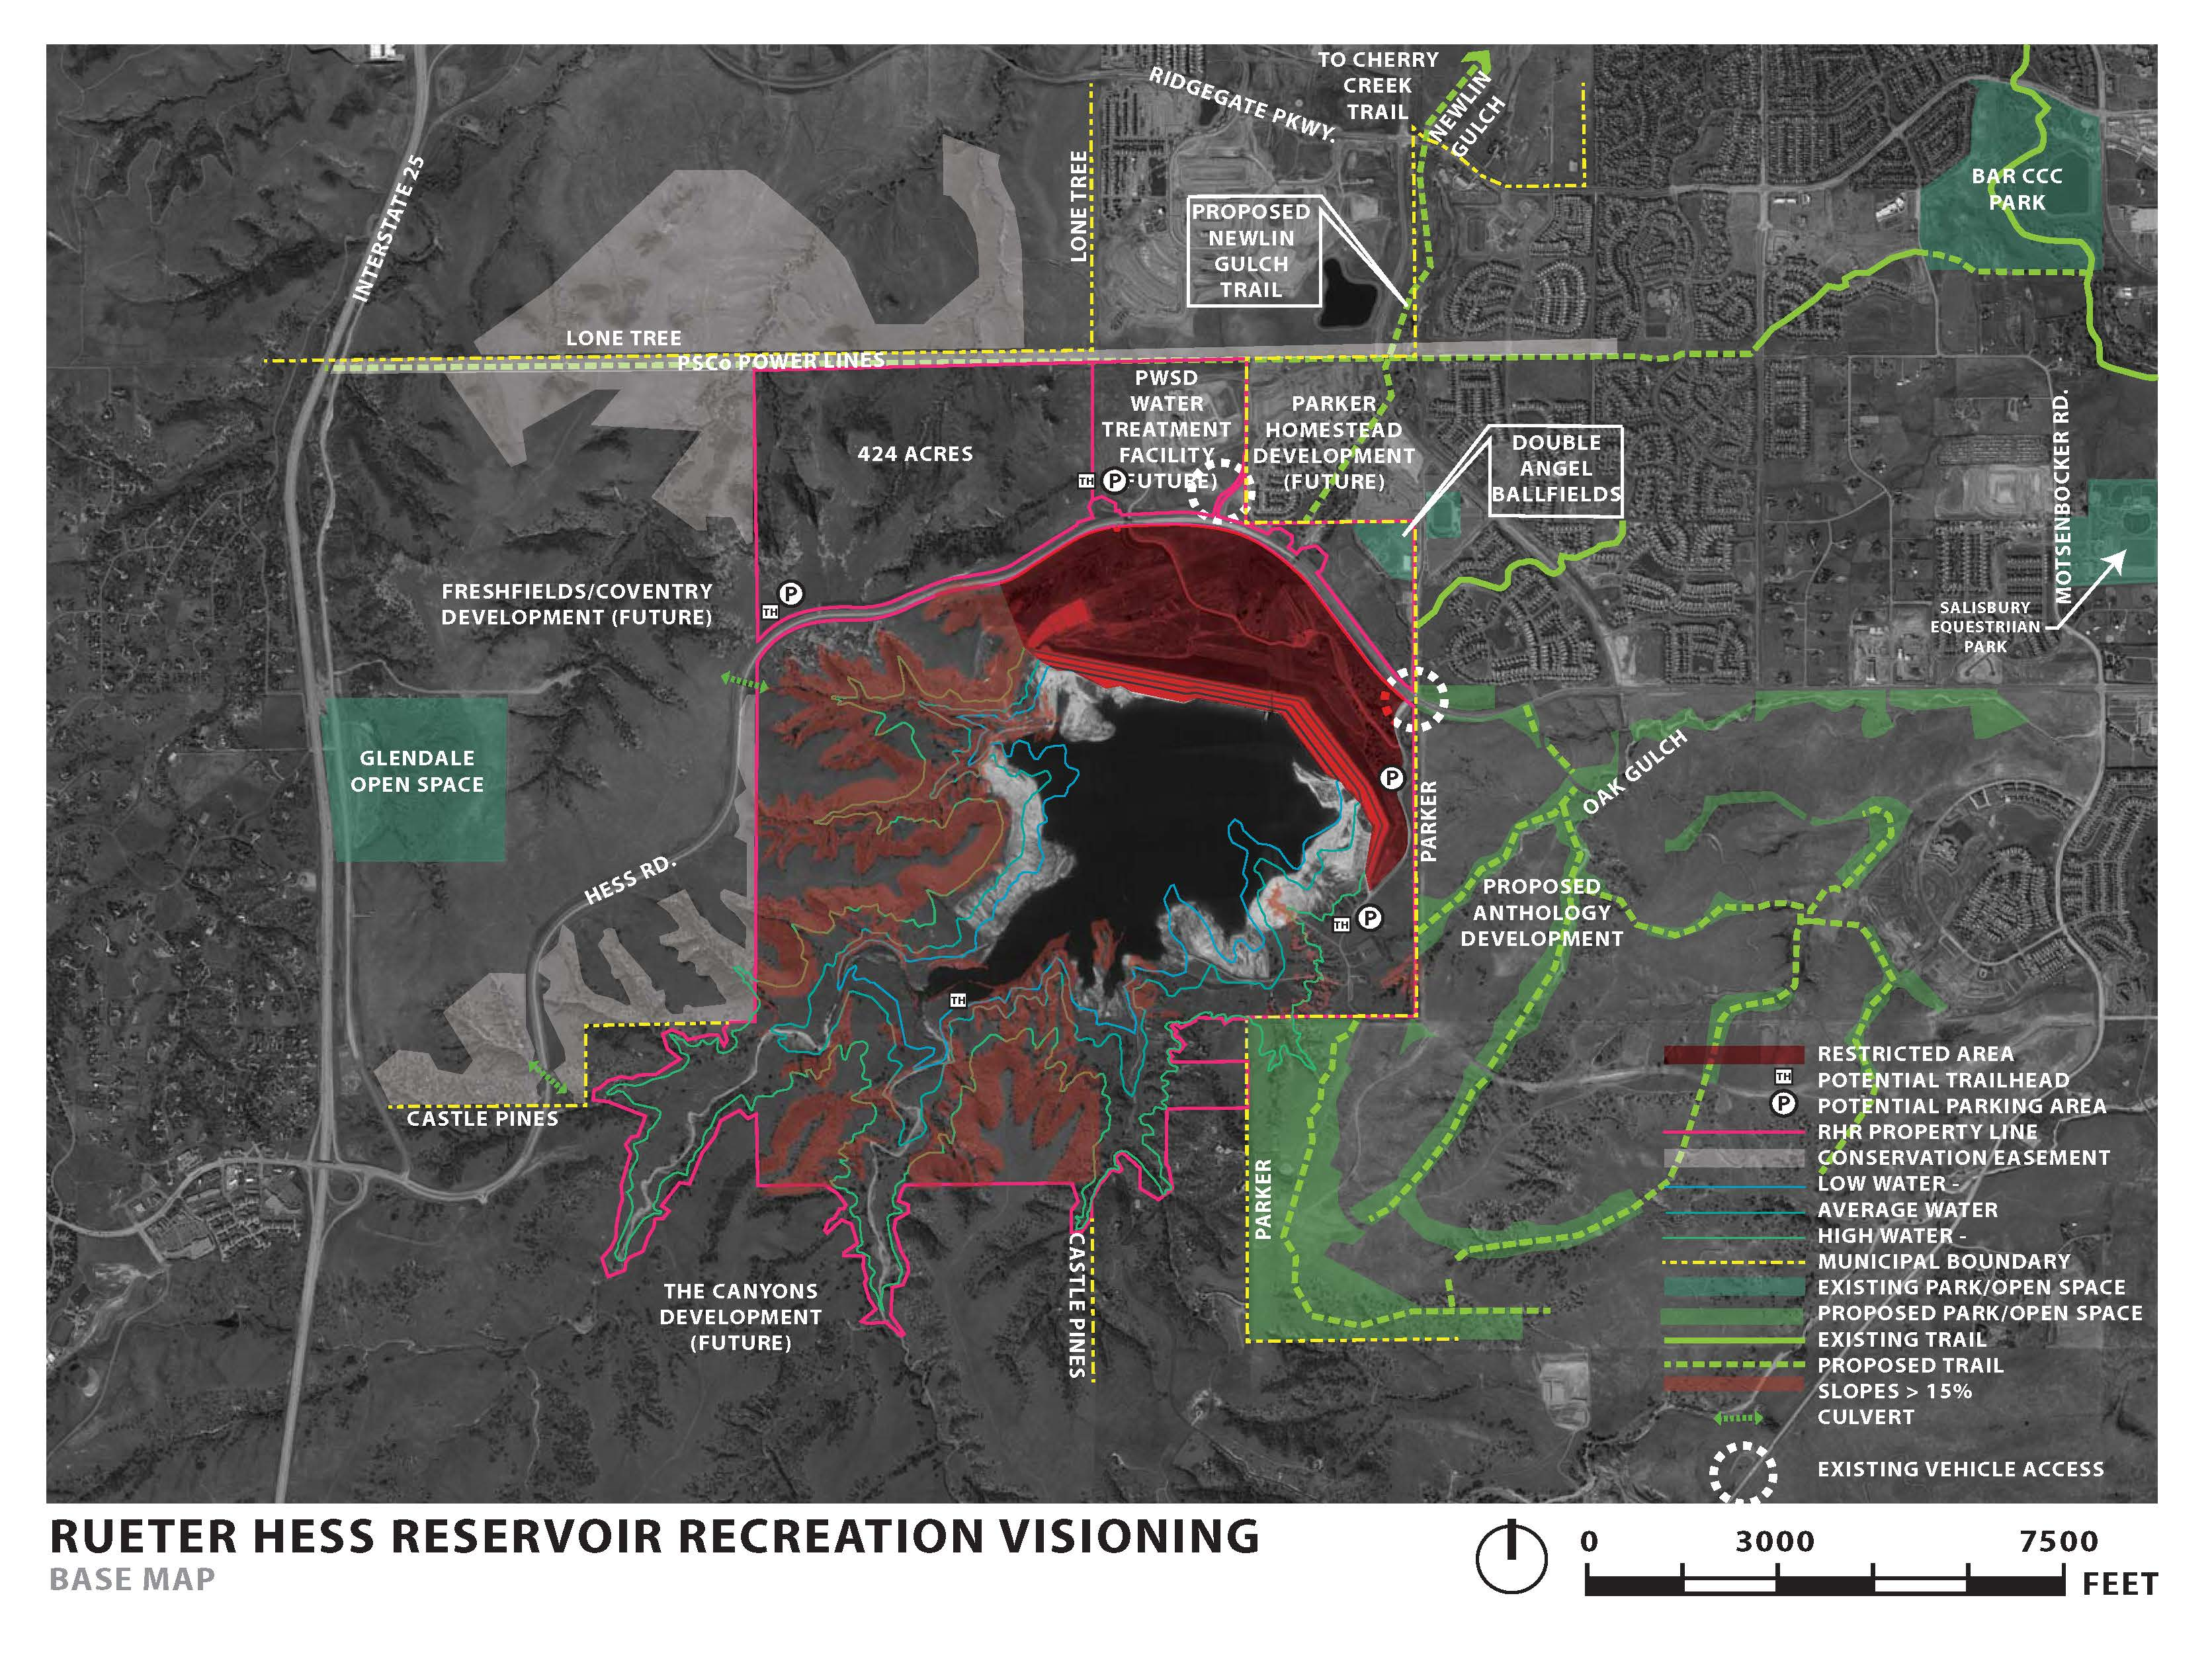 Rueter Hess Reservoir Recreation Visioning Map